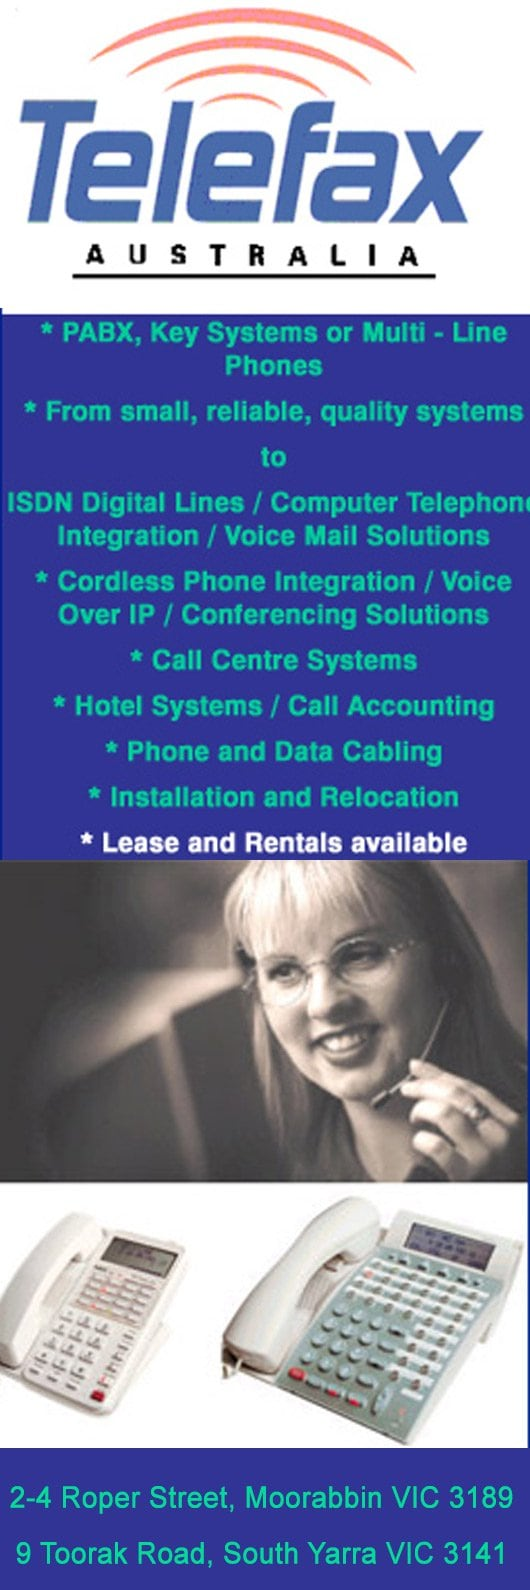 Telefax Australia - Telephone Installation, Repairs & Maintenance